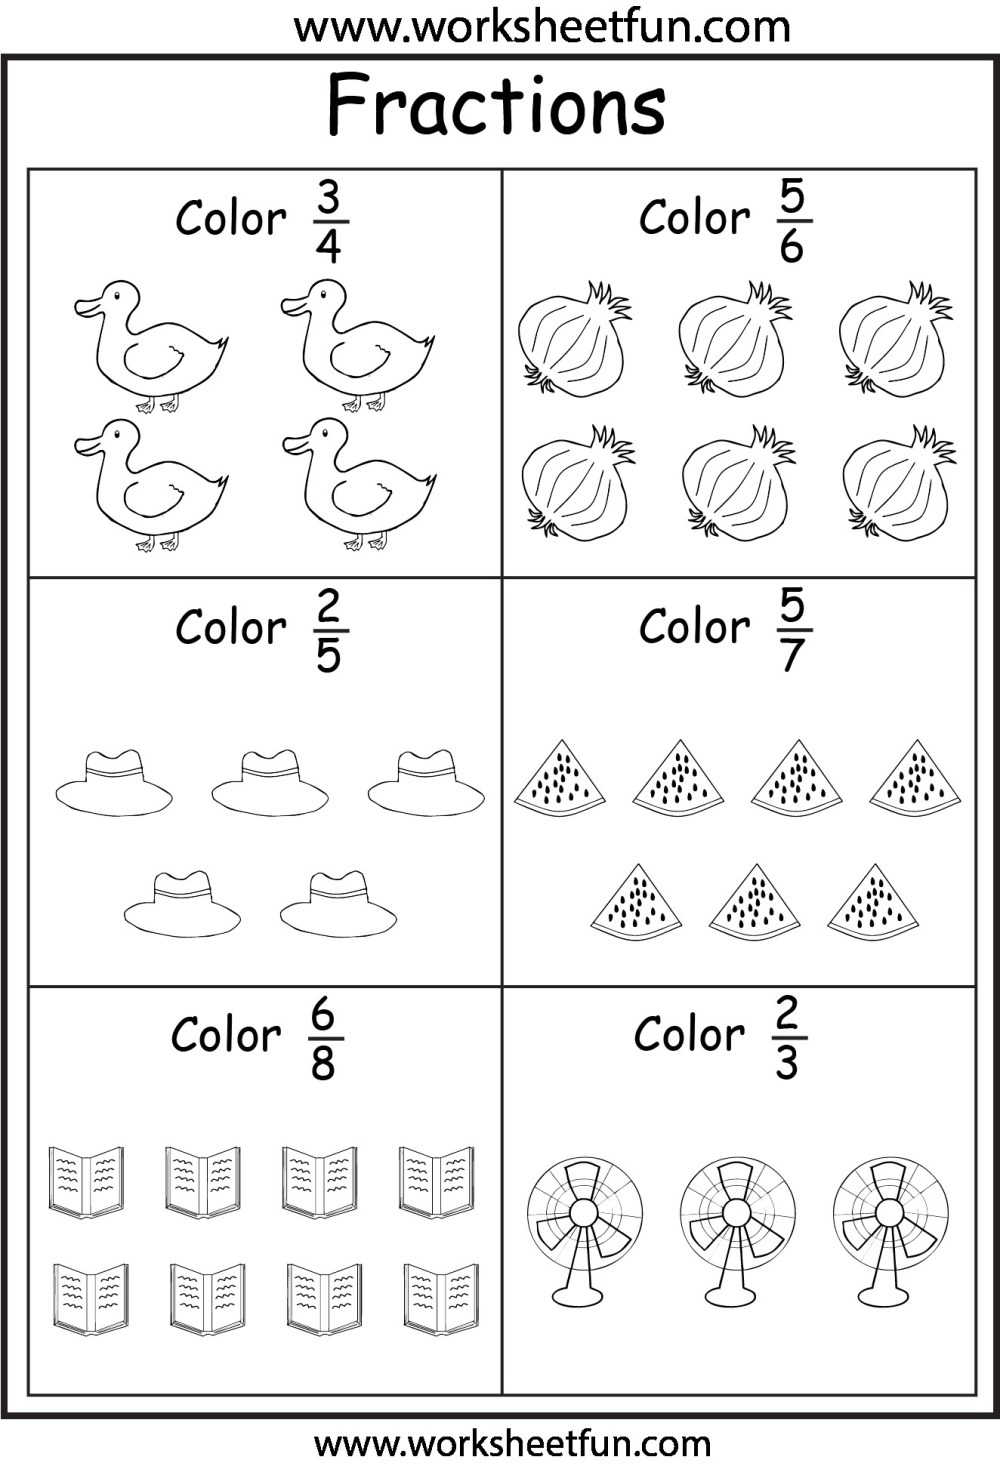 medium resolution of 4 Free Math Worksheets Third Grade 3 Fractions and Decimals Equivalent  Fractions - apocalomegaproductions.com